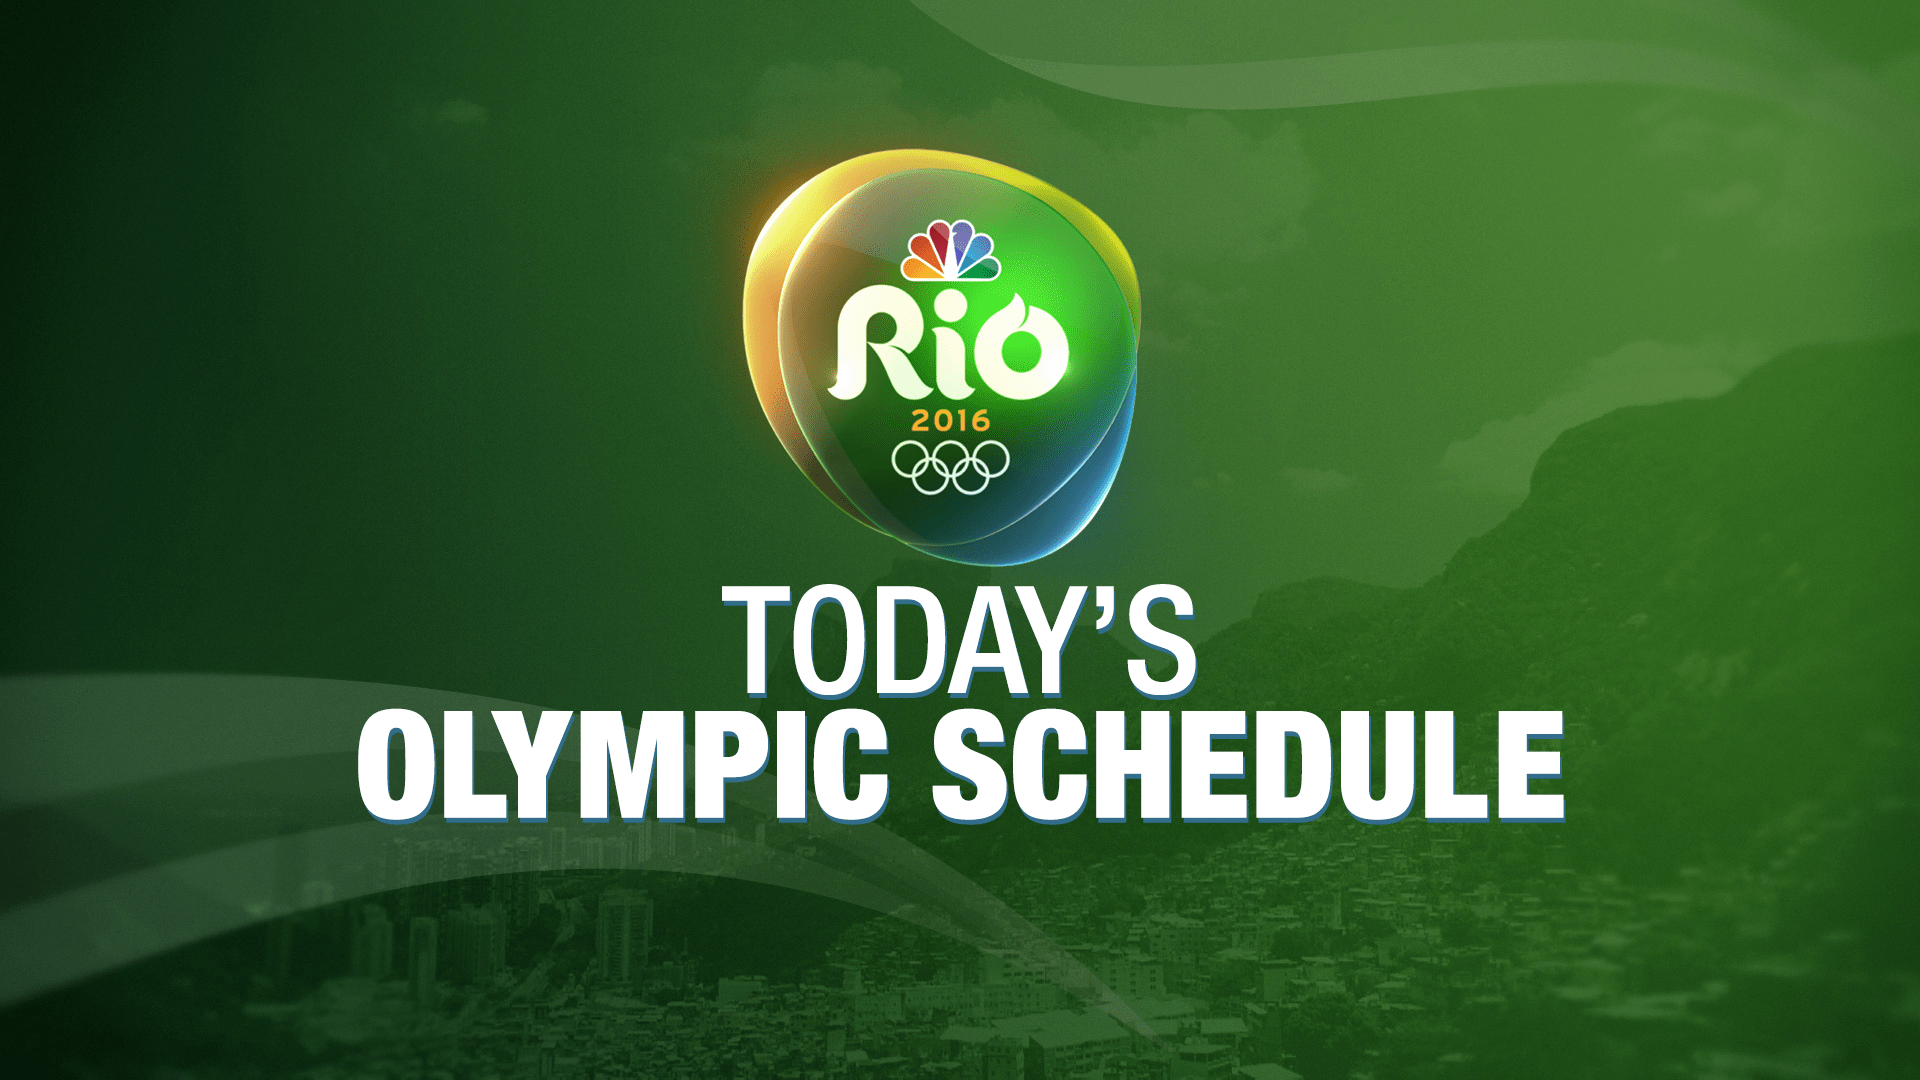 WSAV%20Olympic%20Schedule%2016x9%20080516%20vs_142597